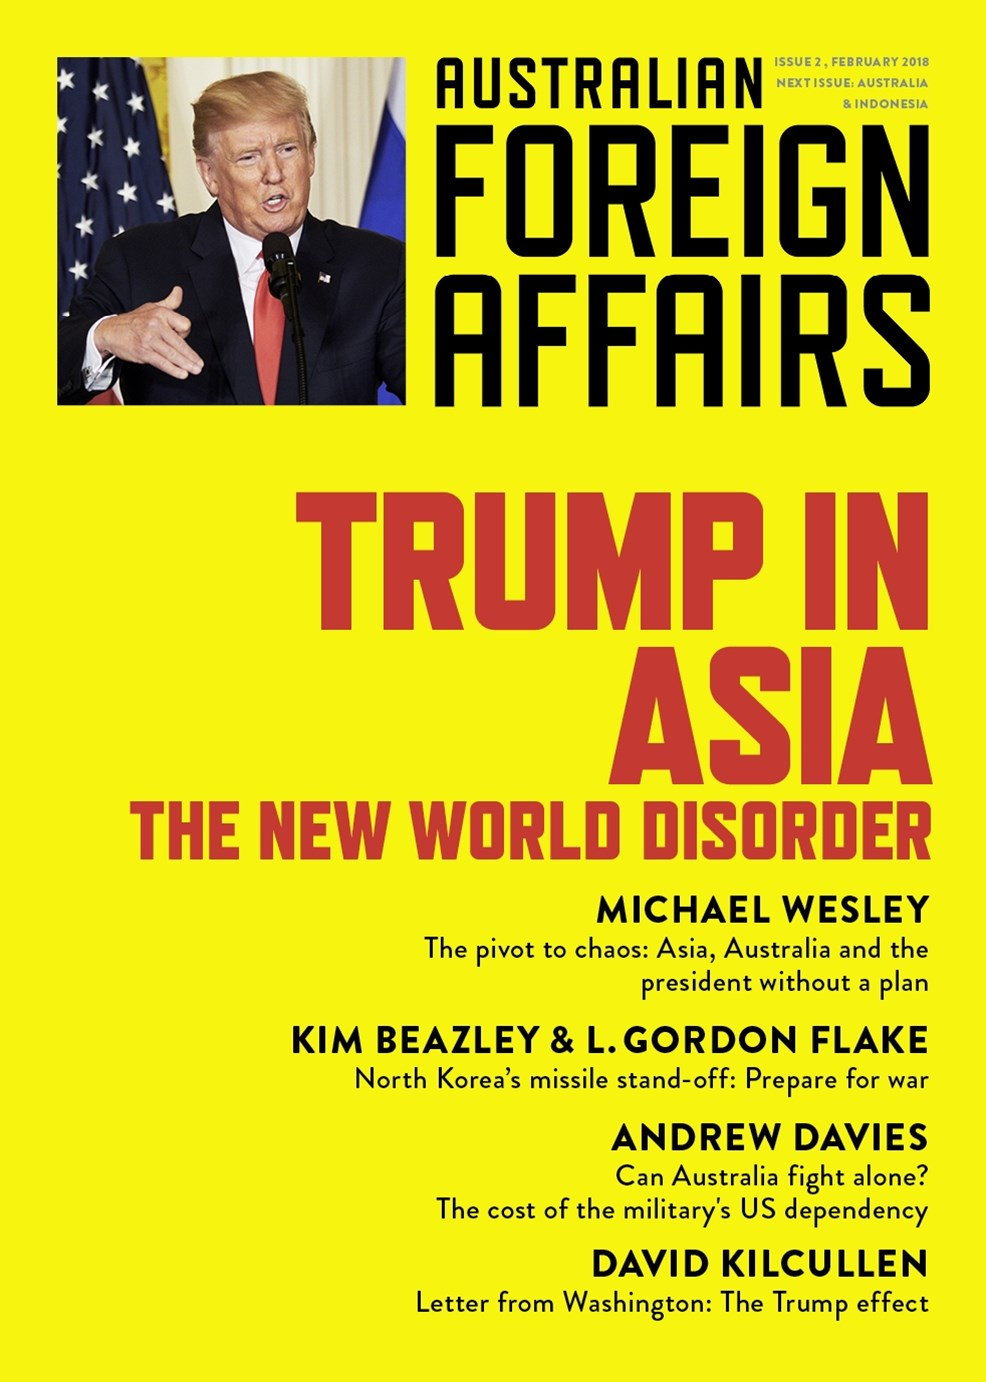 Trump in Asia: The New World Disorder: Australian Foreign Affairs: Issue 2